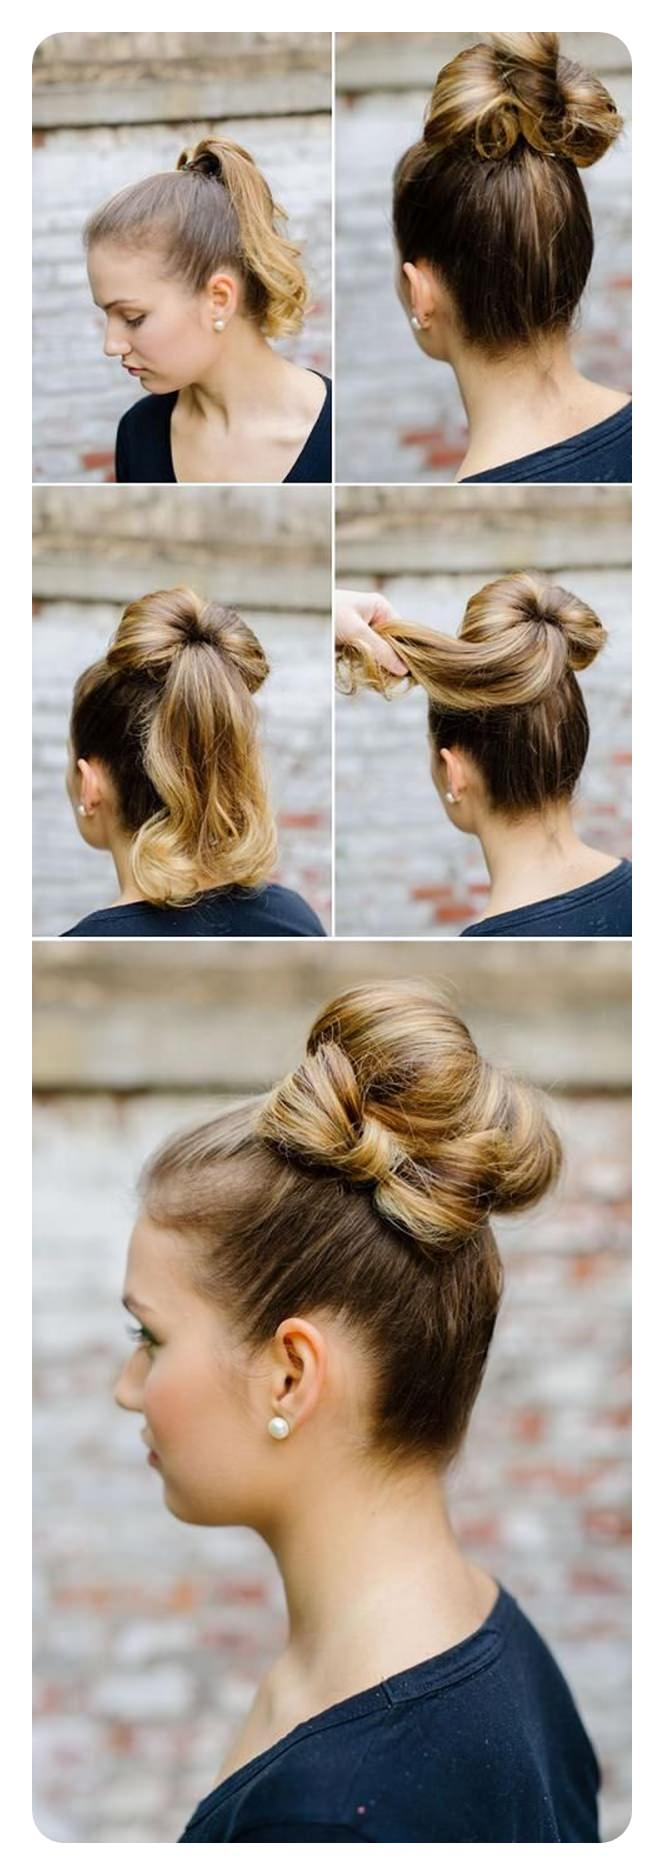 64 Easy Sock Bun Hairstyles You Should Definitely Try - Style Easily